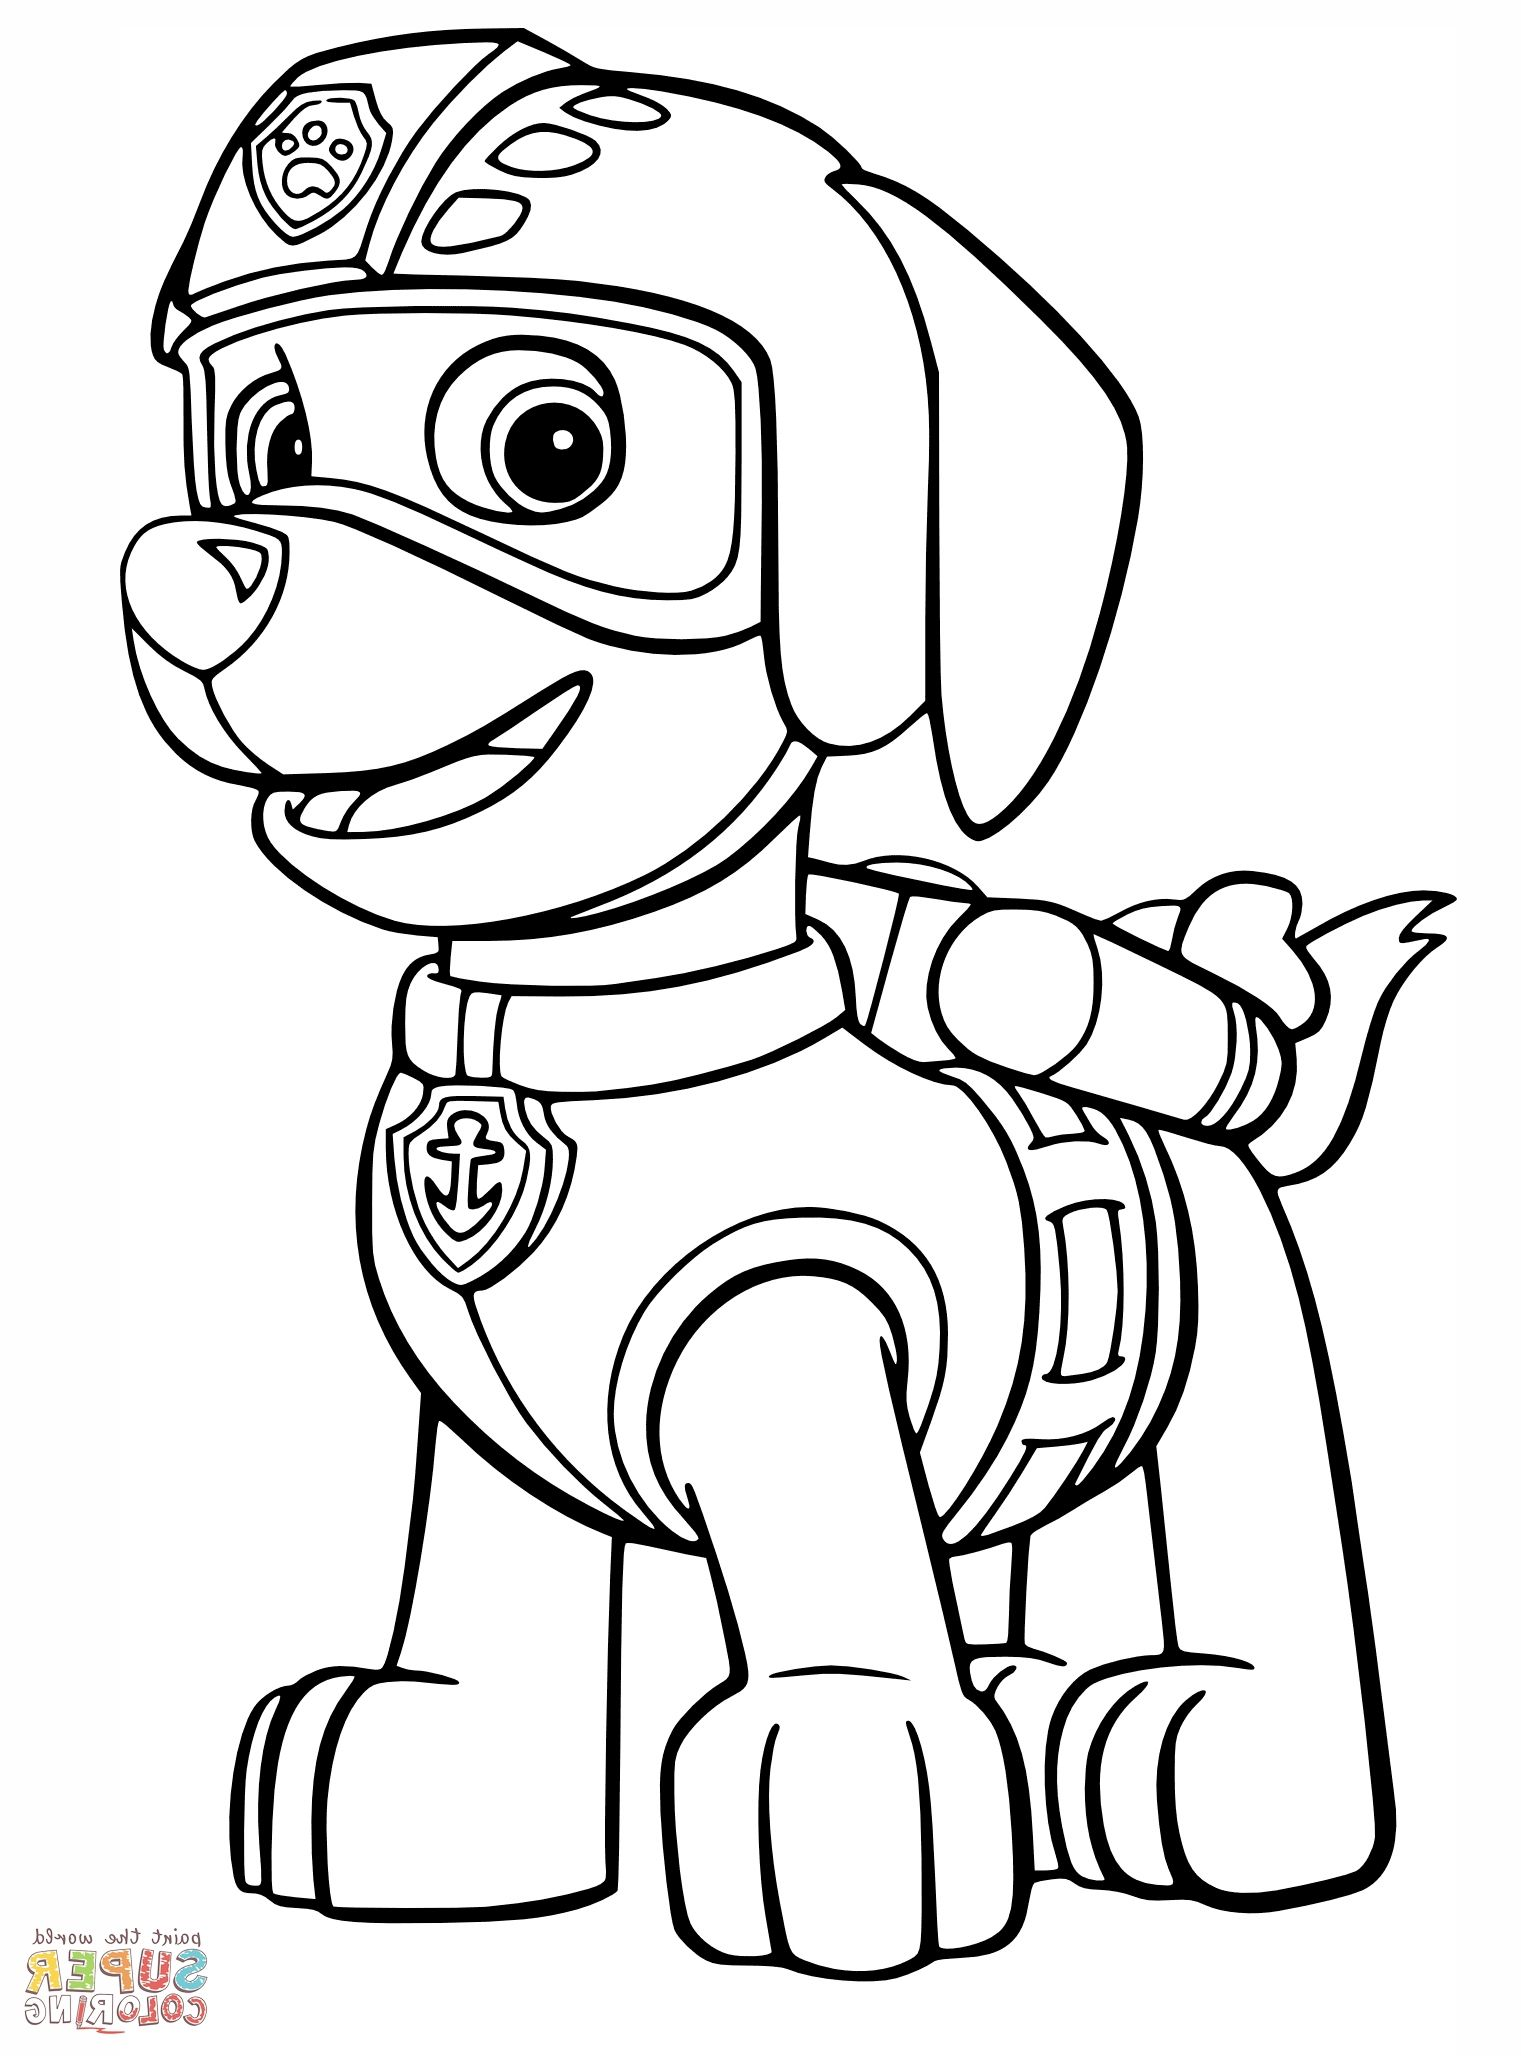 Zuma Paw Patrol Coloring Page Nocl Paw Patrol Coloring Pages